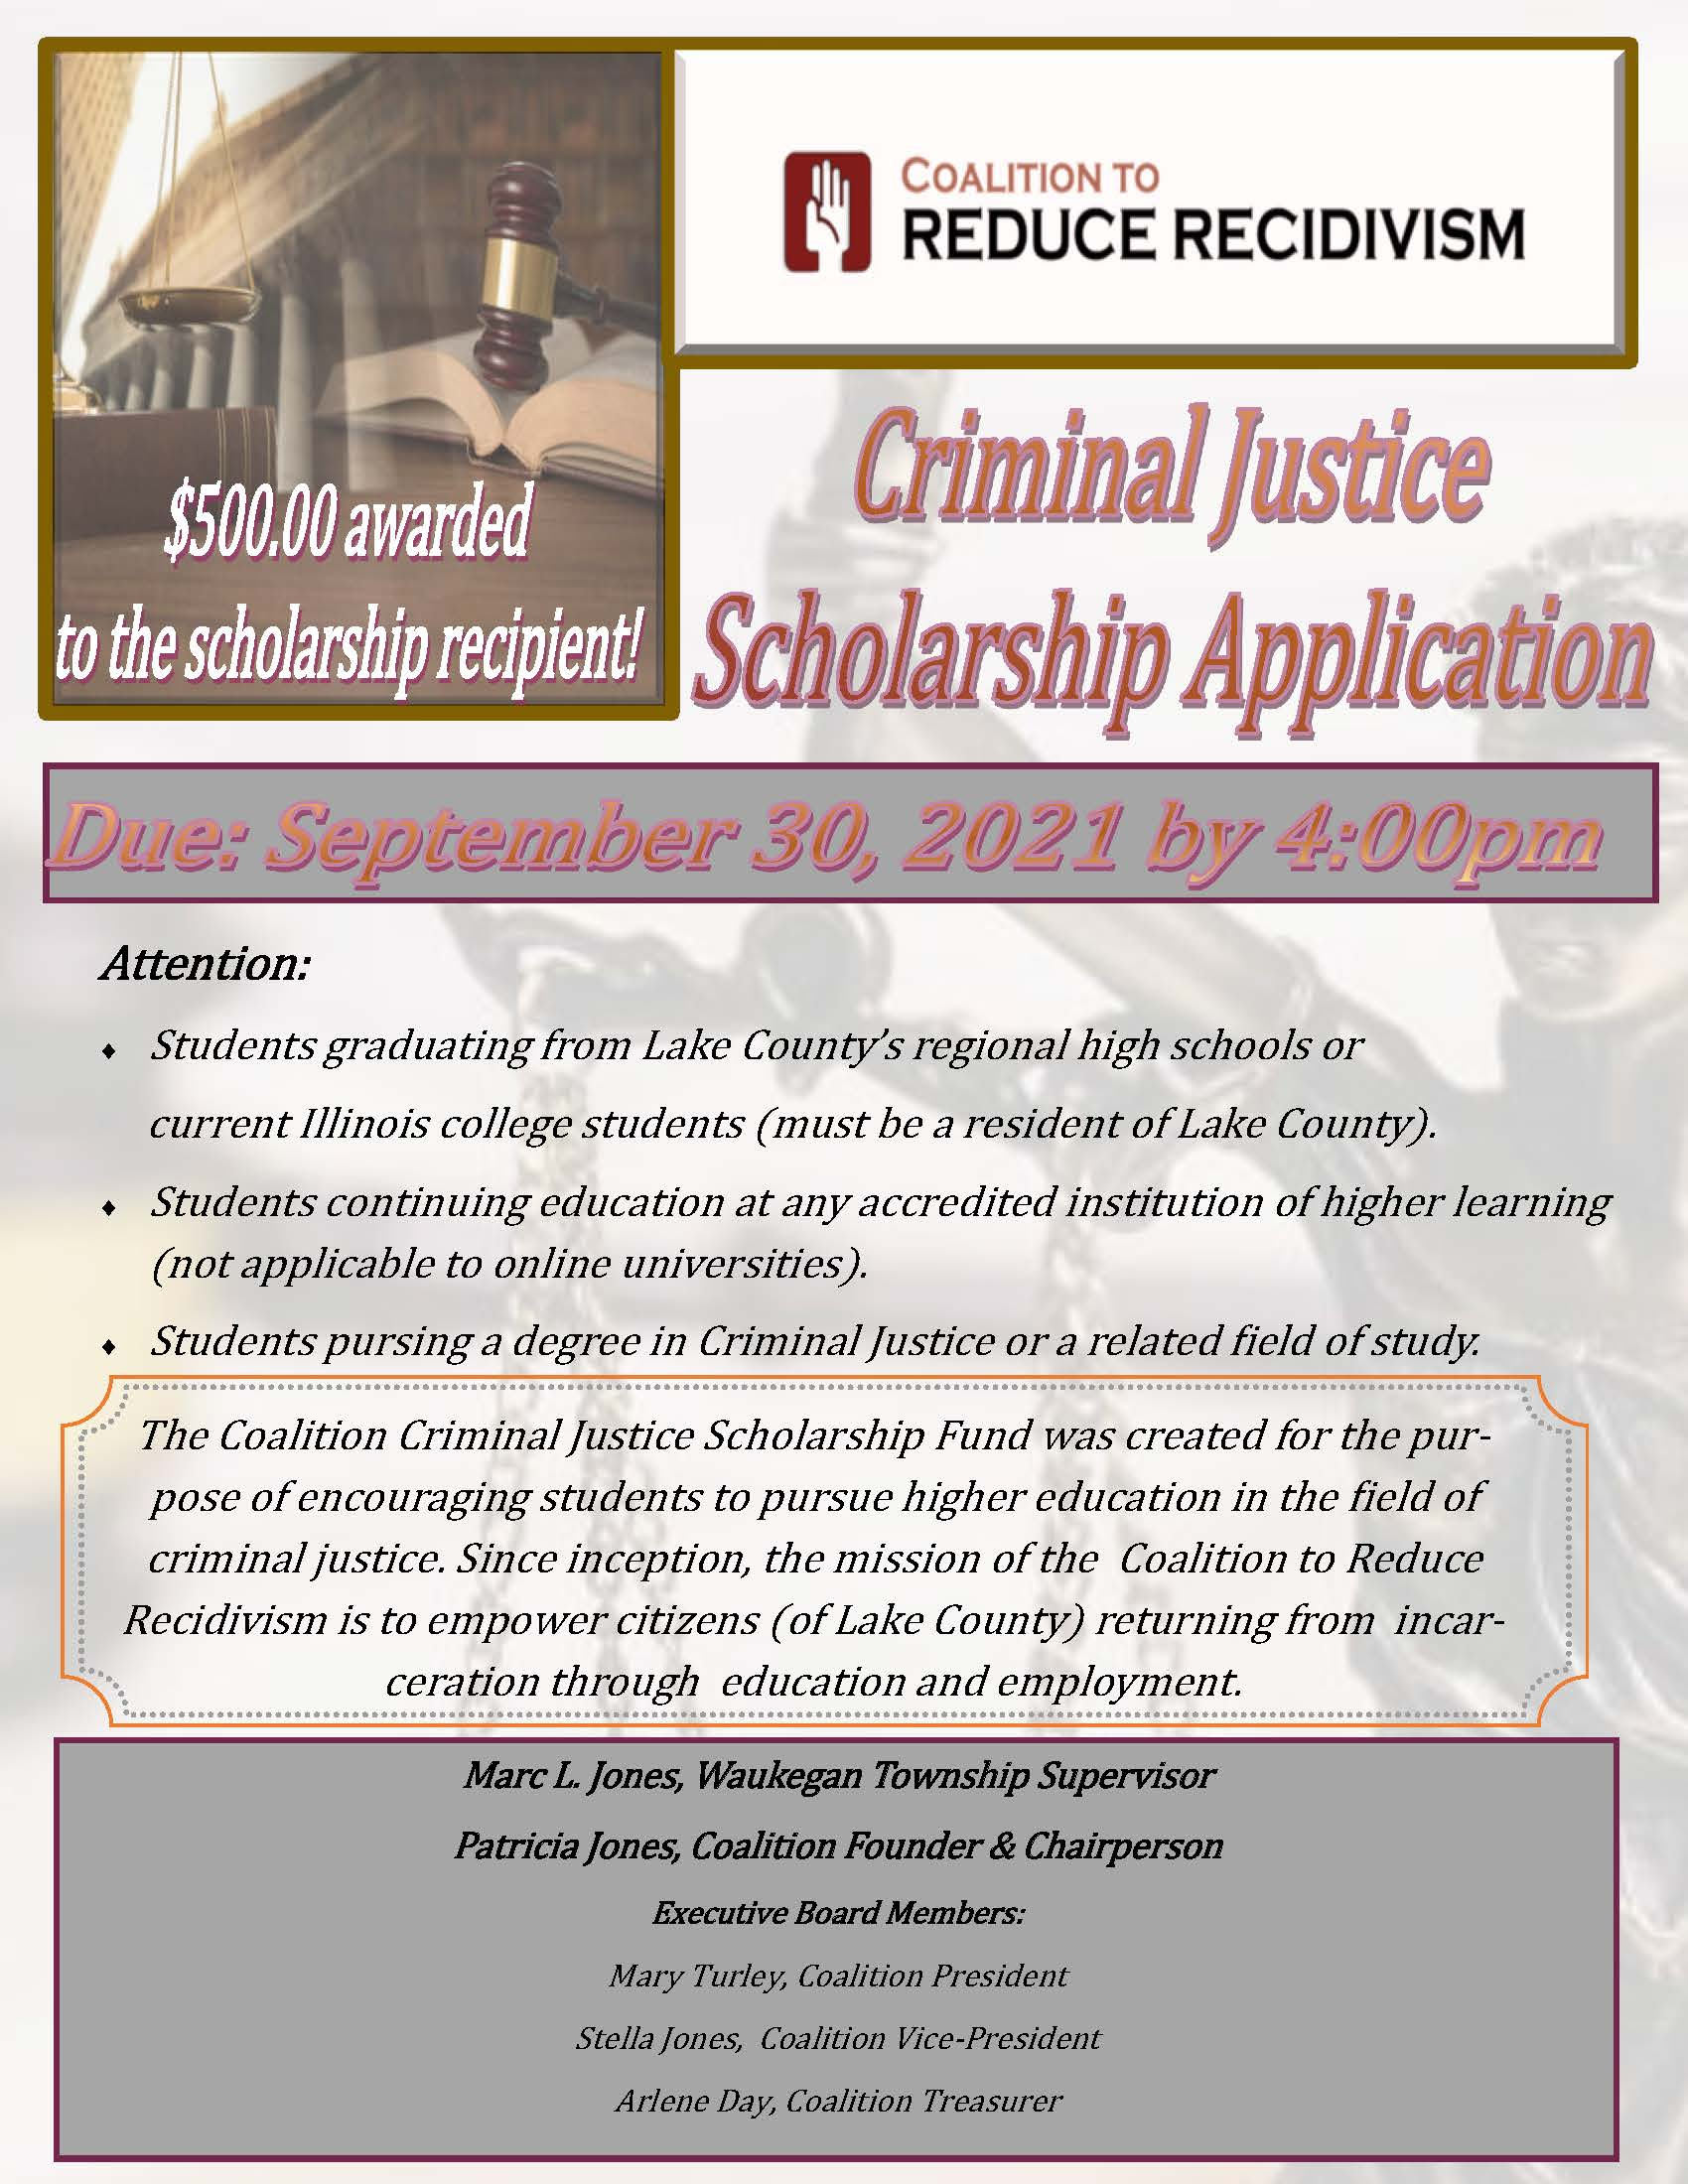 2021 Annual Criminal Justice Scholarship Application (1) (1)_Page_1